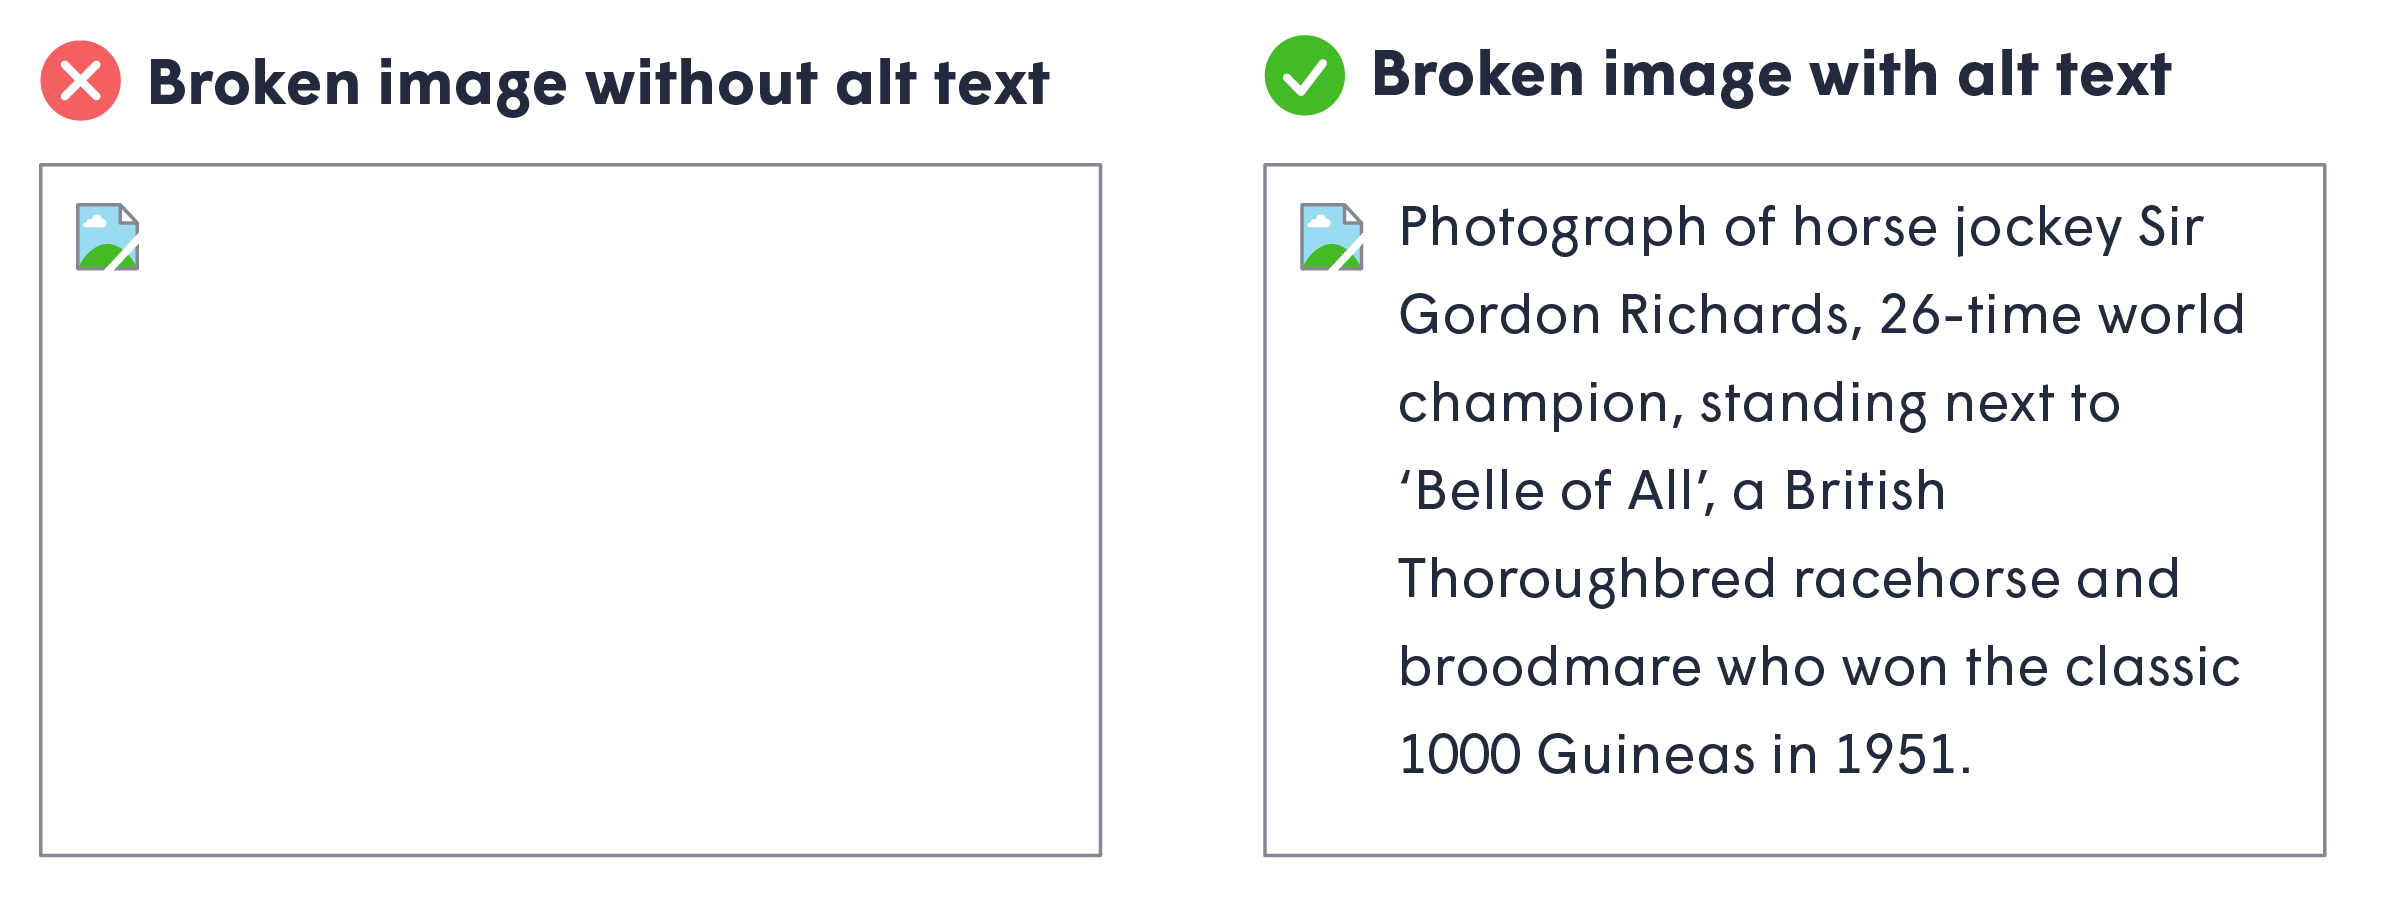 illustration showcasing the difference between having, and not having, and alt text in your image